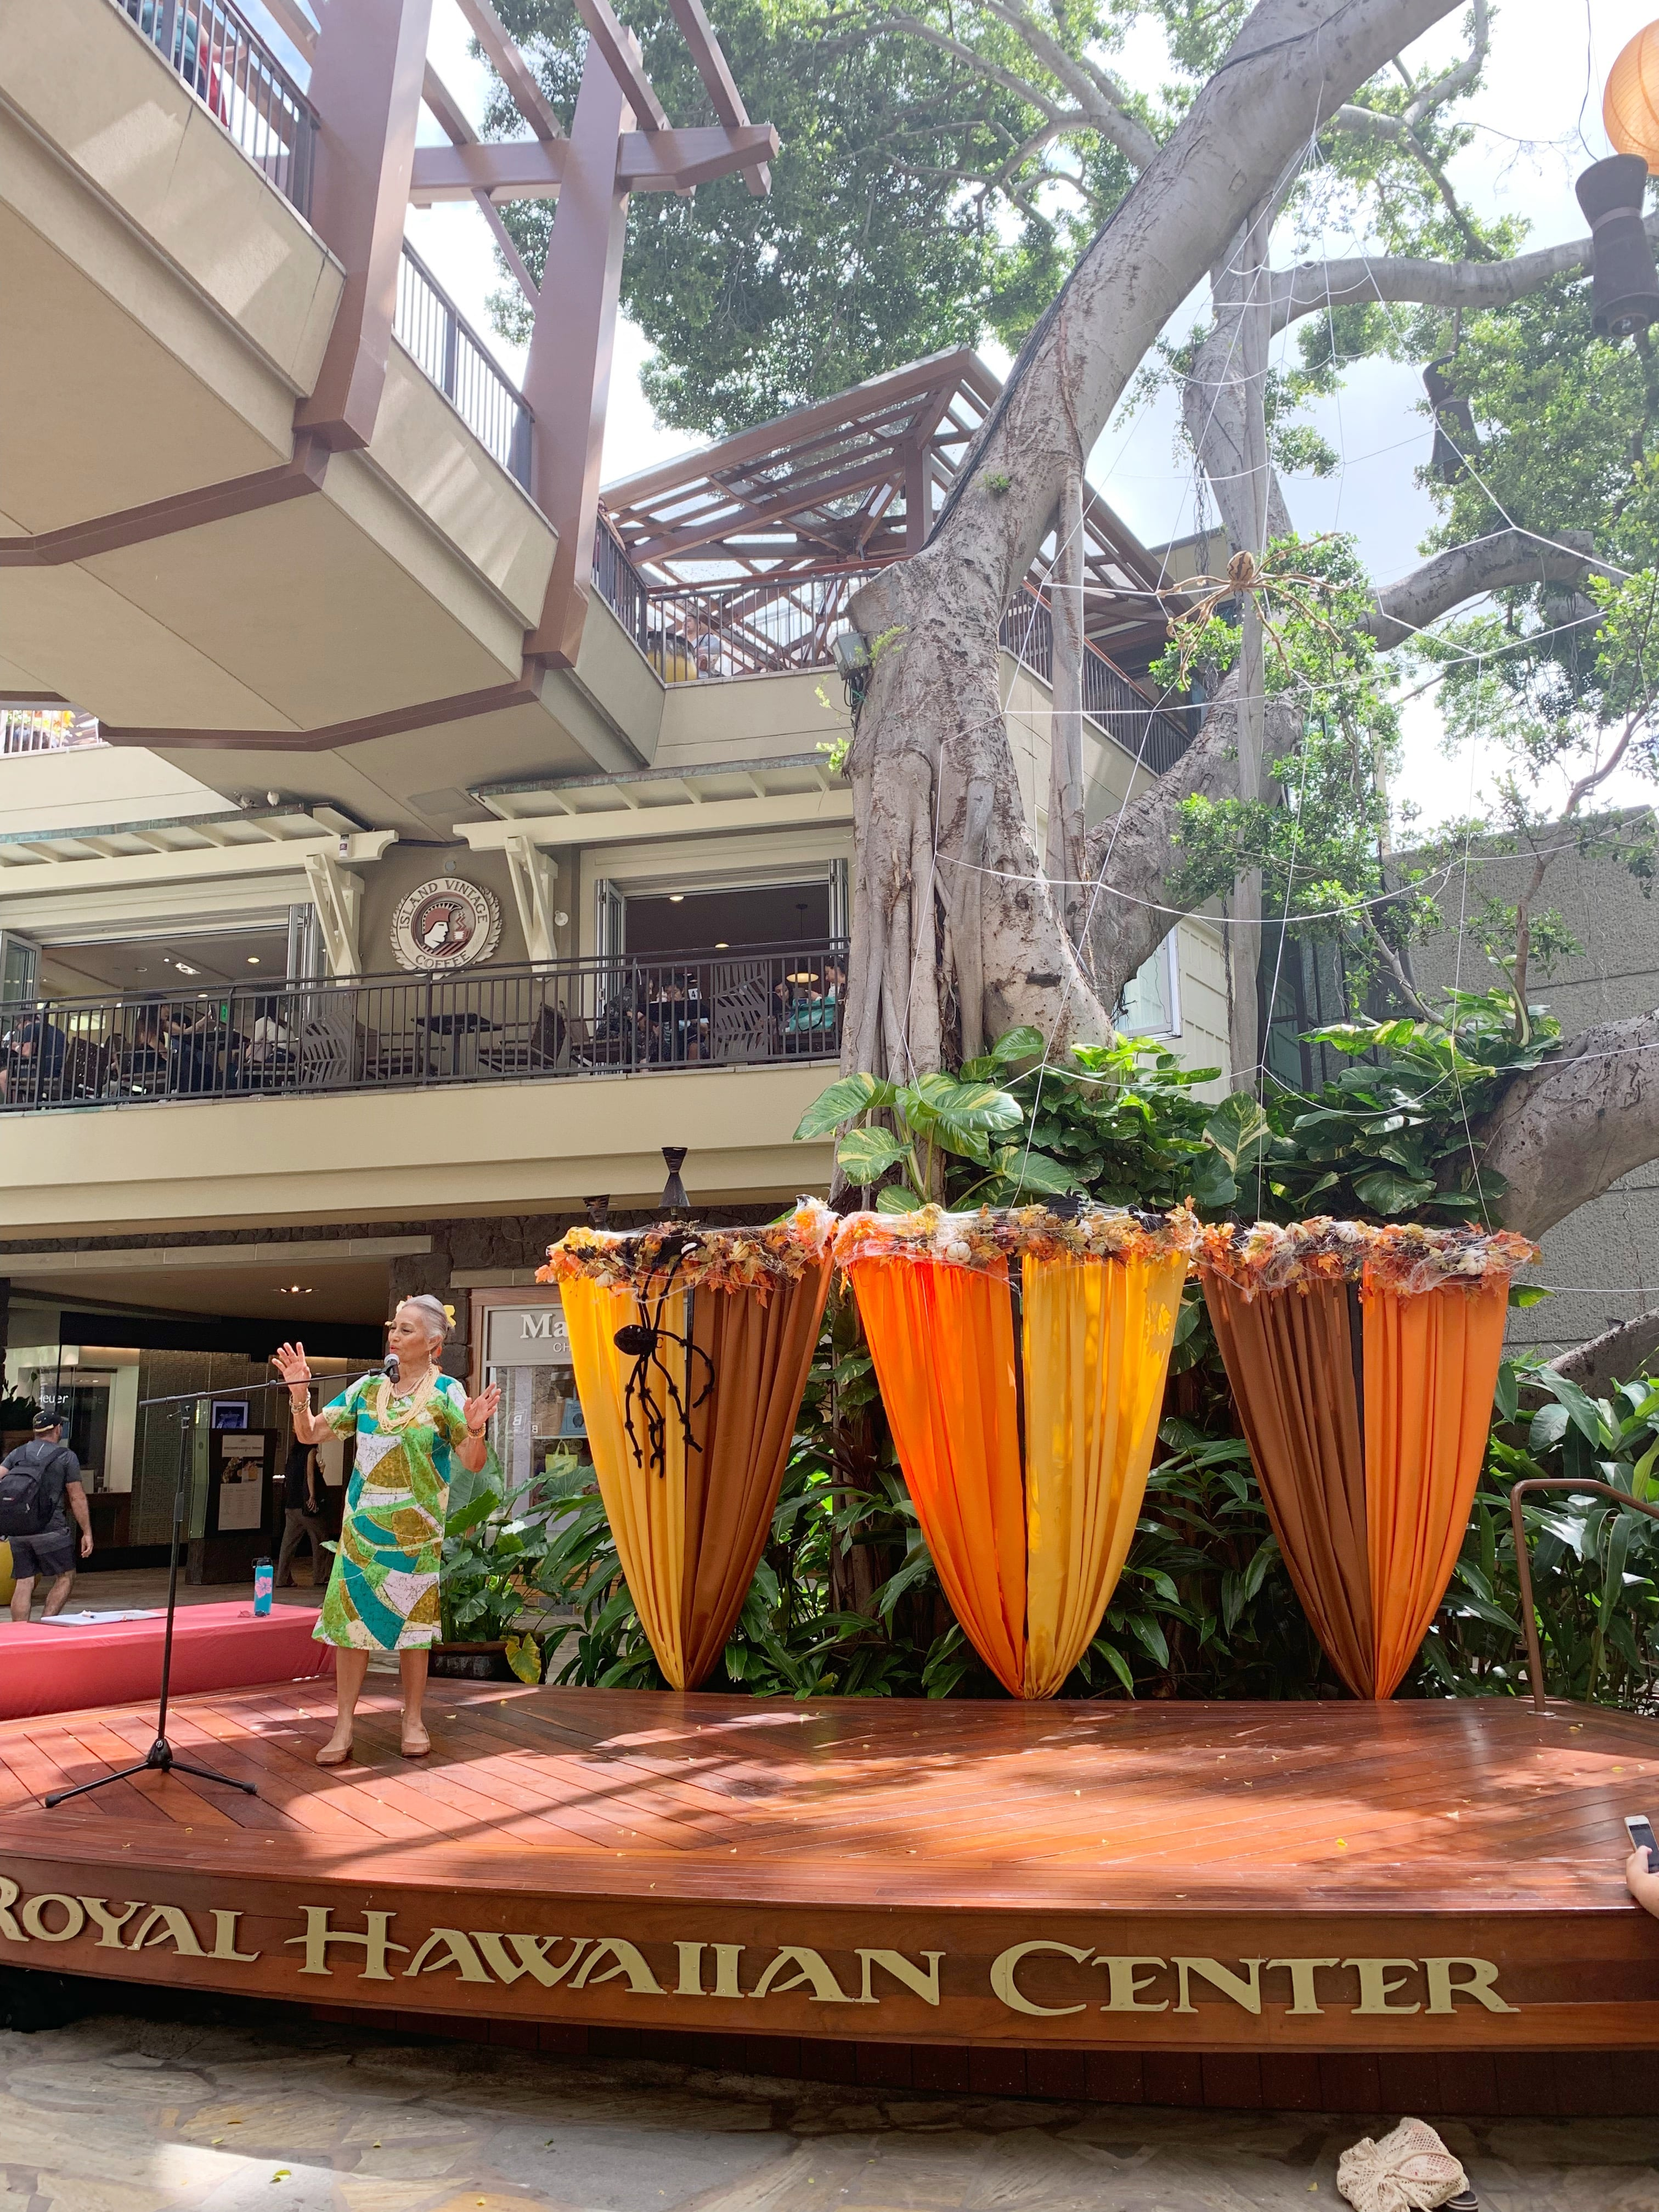 Free Hula Lessons At Royal Hawaiian Center - Looking for a fun and free activity in Honolulu? Check out the free hula lessons at Royal Hawaiian Center! | Royal Hawaiian Center Oahu - Royal Hawaiian Shopping center - Oahu Hawaii Activities